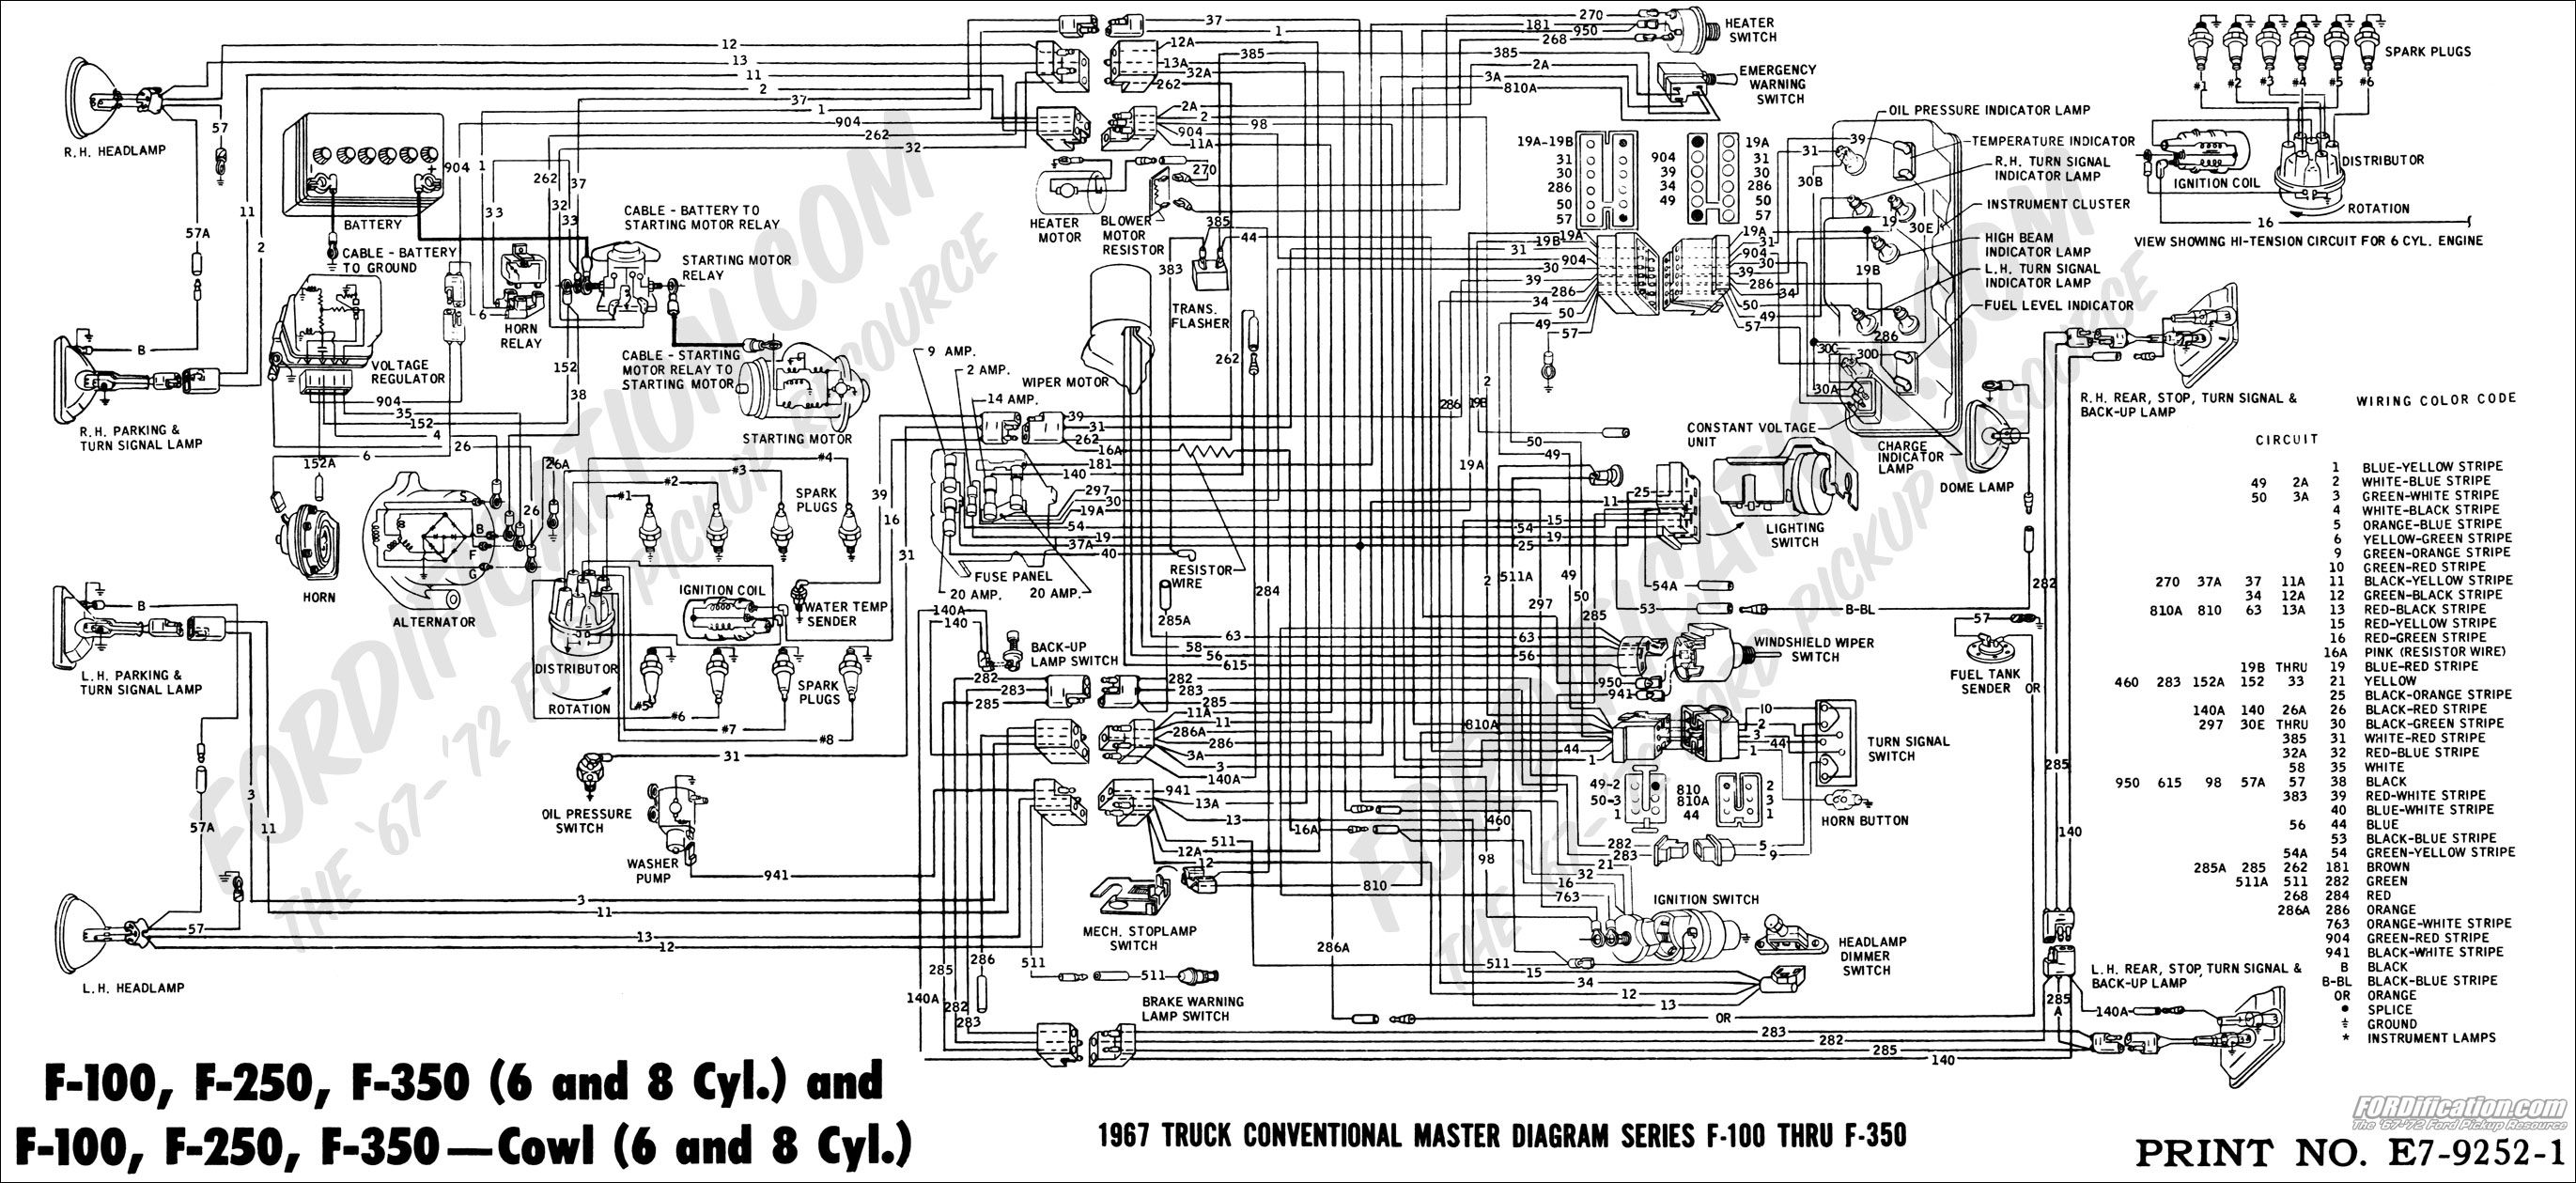 8e608320d8e6c71ff5bbdb2efdd7ada1 ford truck technical drawings and schematics section h wiring 1965 ford f100 wiring harness at bayanpartner.co